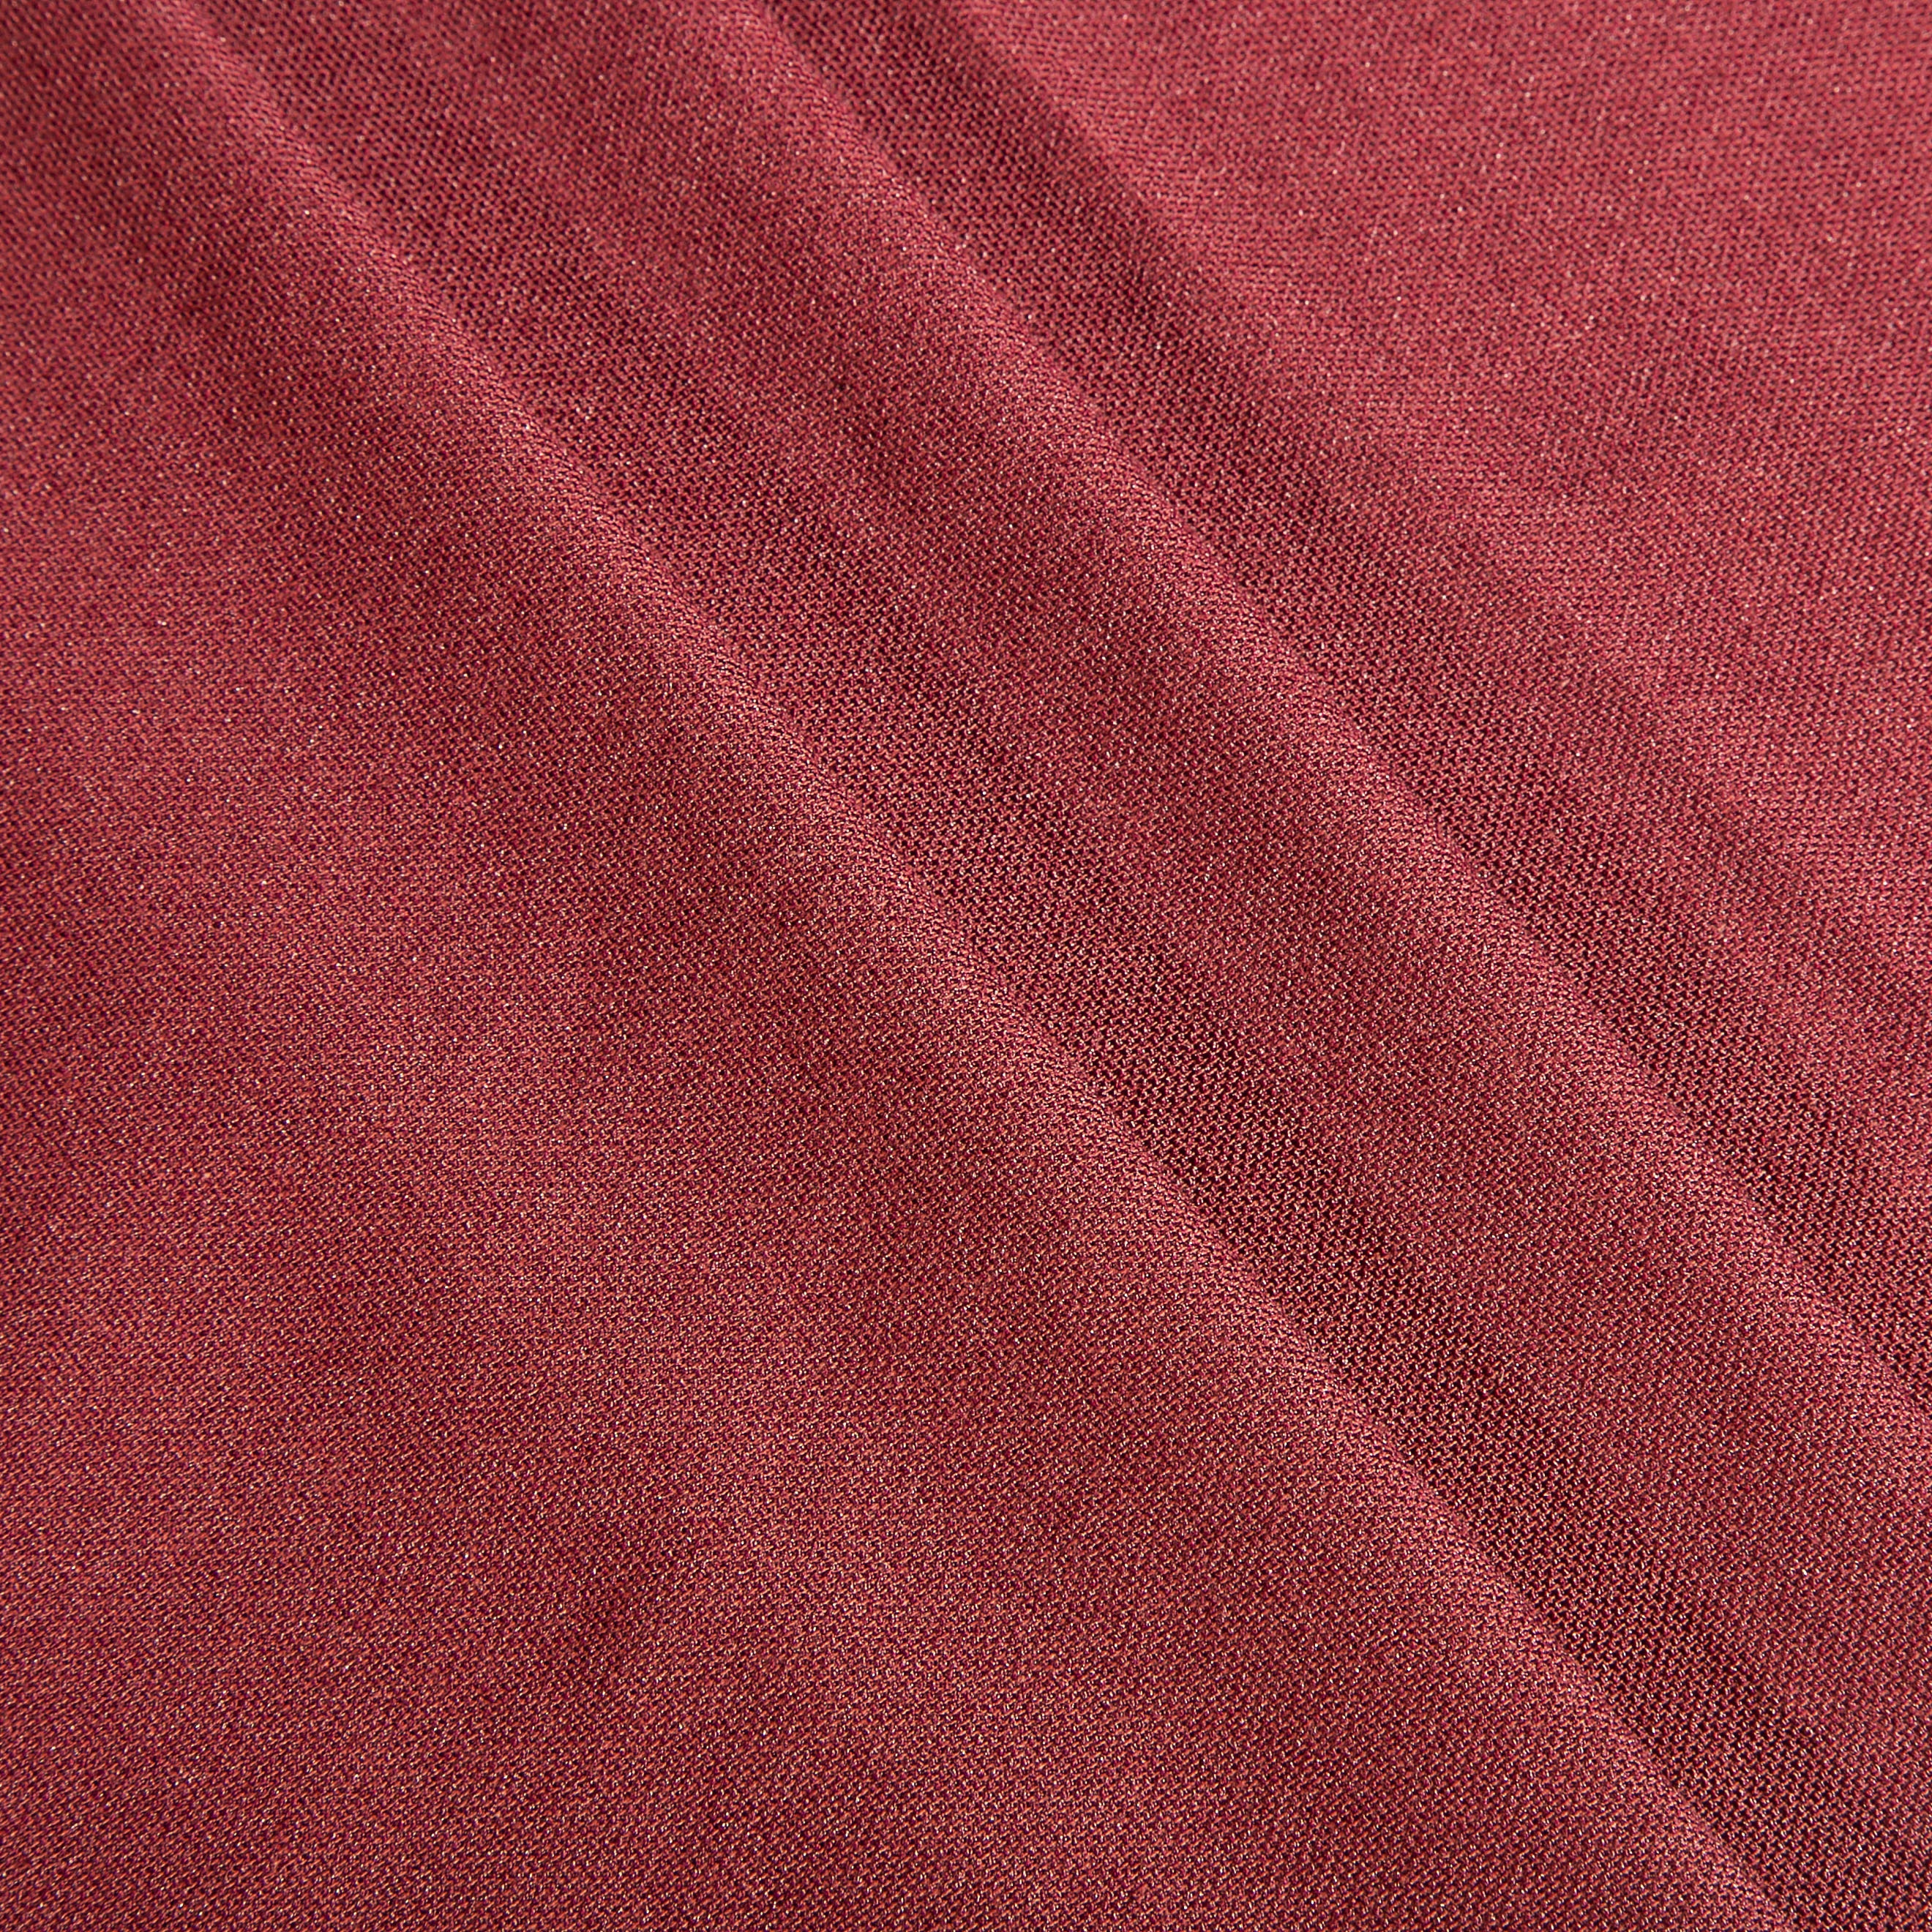 65%Polyester 35% Cotton Knitted Pinue Mesh Fabric For T-shirt And Polo